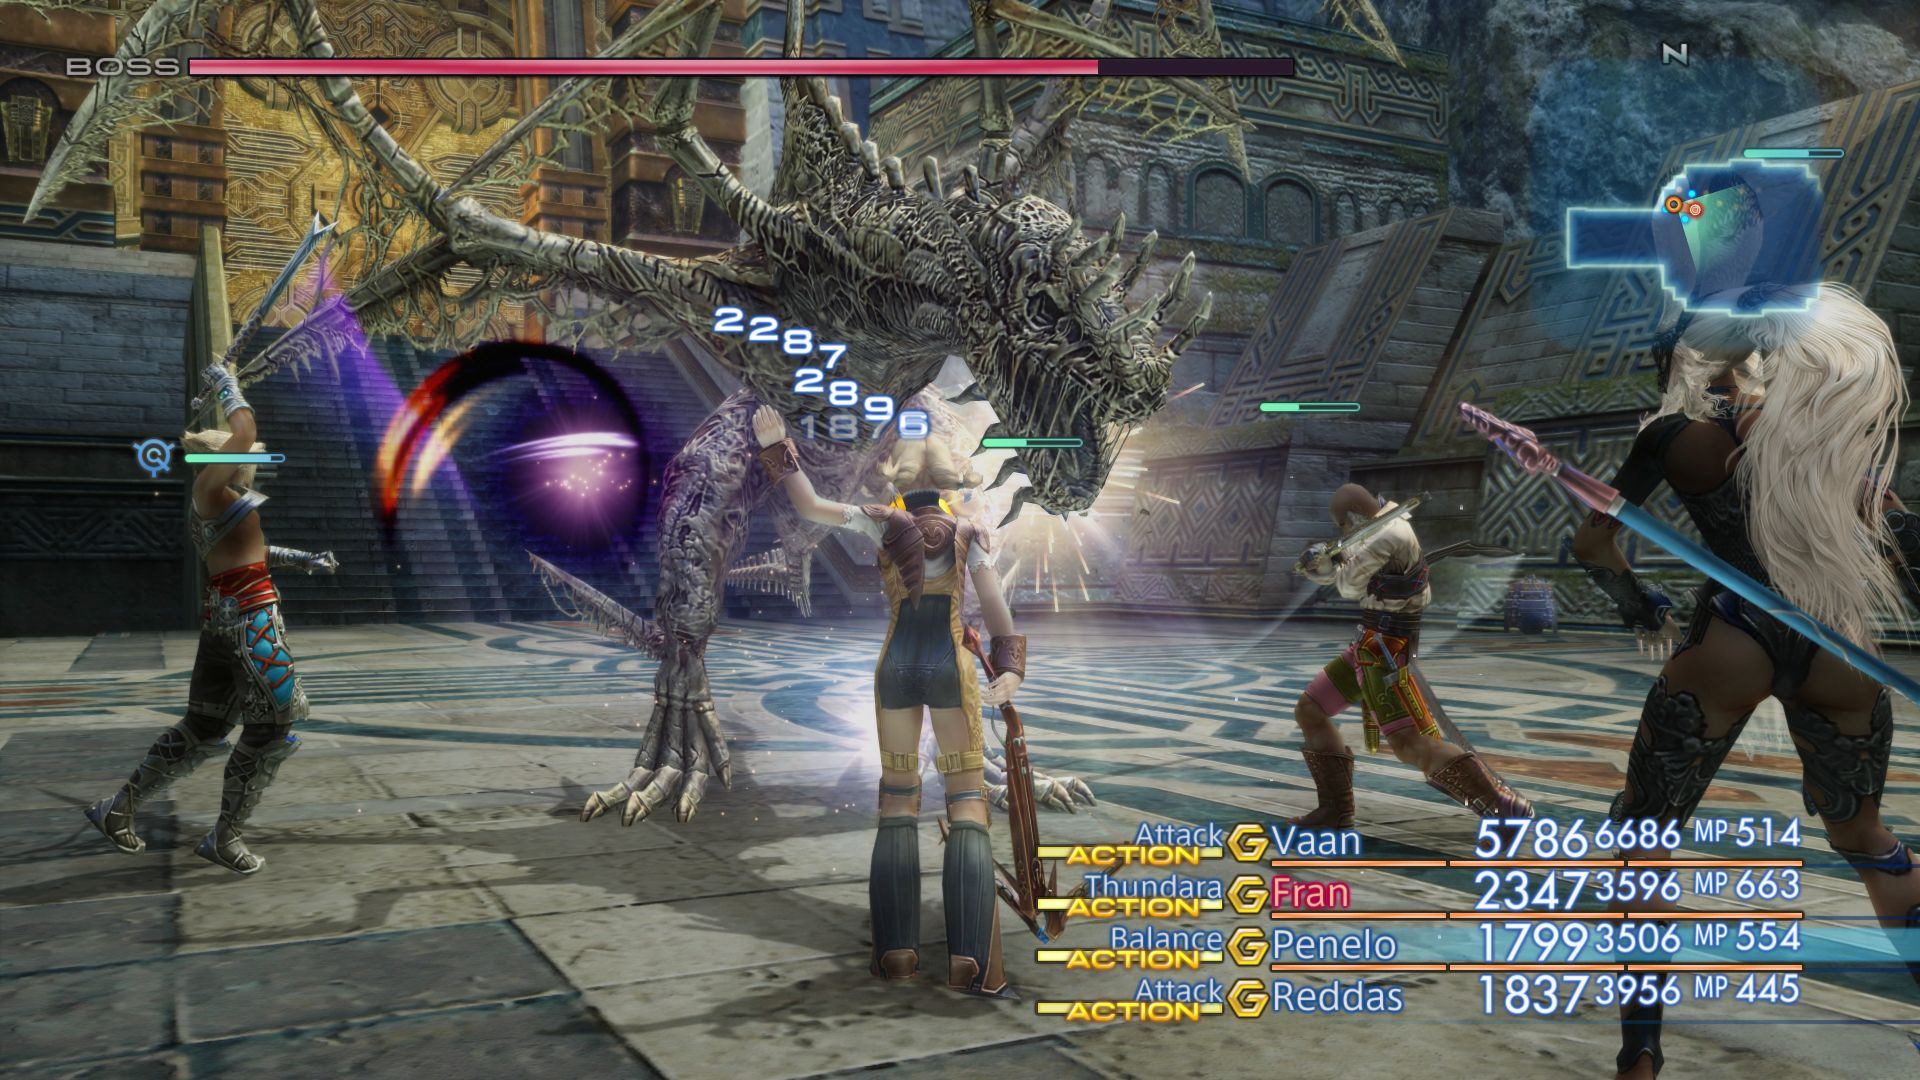 Final Fantasy XII The Zodiac Age Launches For PC On February 1 With 60FPS Support And Other